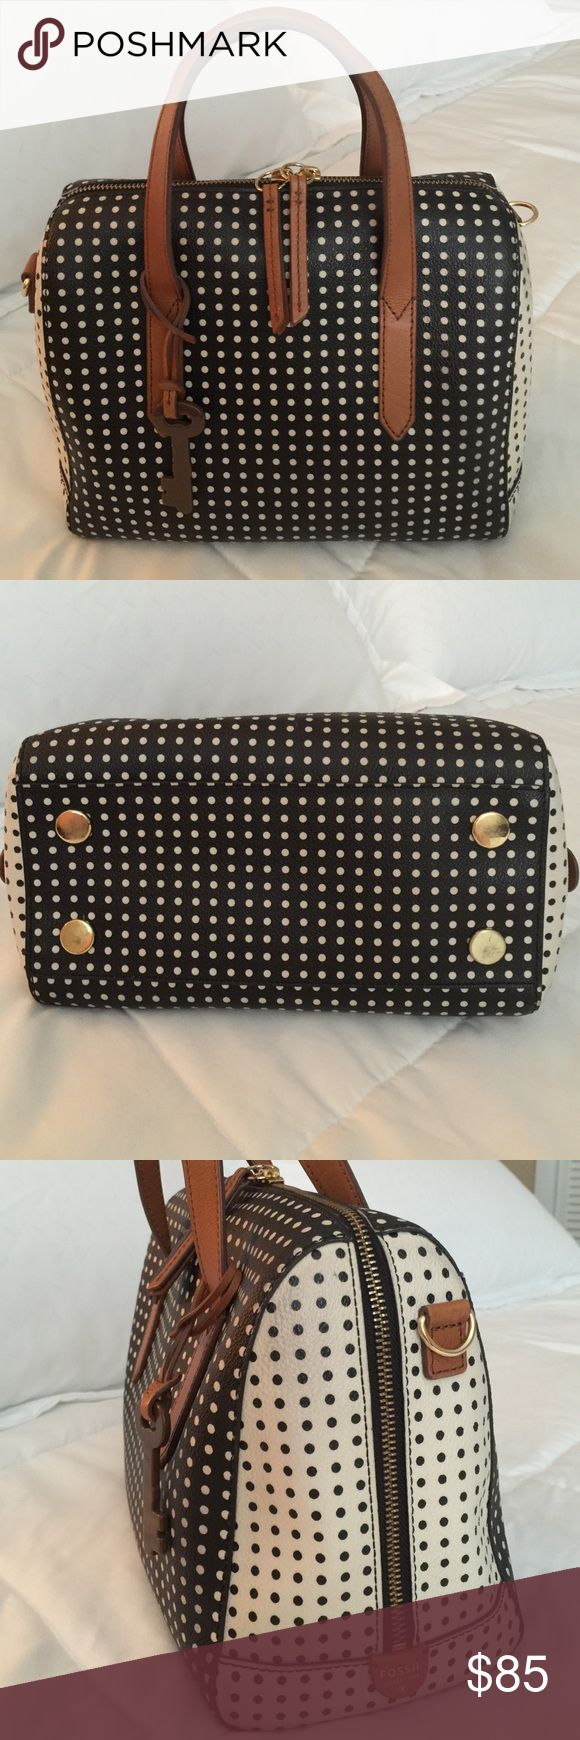 """Fossil polka dot Sydney satchel This super cute great quality fossil bag is gently used with minor wear - very clean, smoke free with no rips or tears. I used it without the strap so i don't have it anymore.  There is a small 1/2"""" pen mark which is inside and you can see it in pic. Black and off white polka dots with gold hardware. Fossil Bags Satchels"""